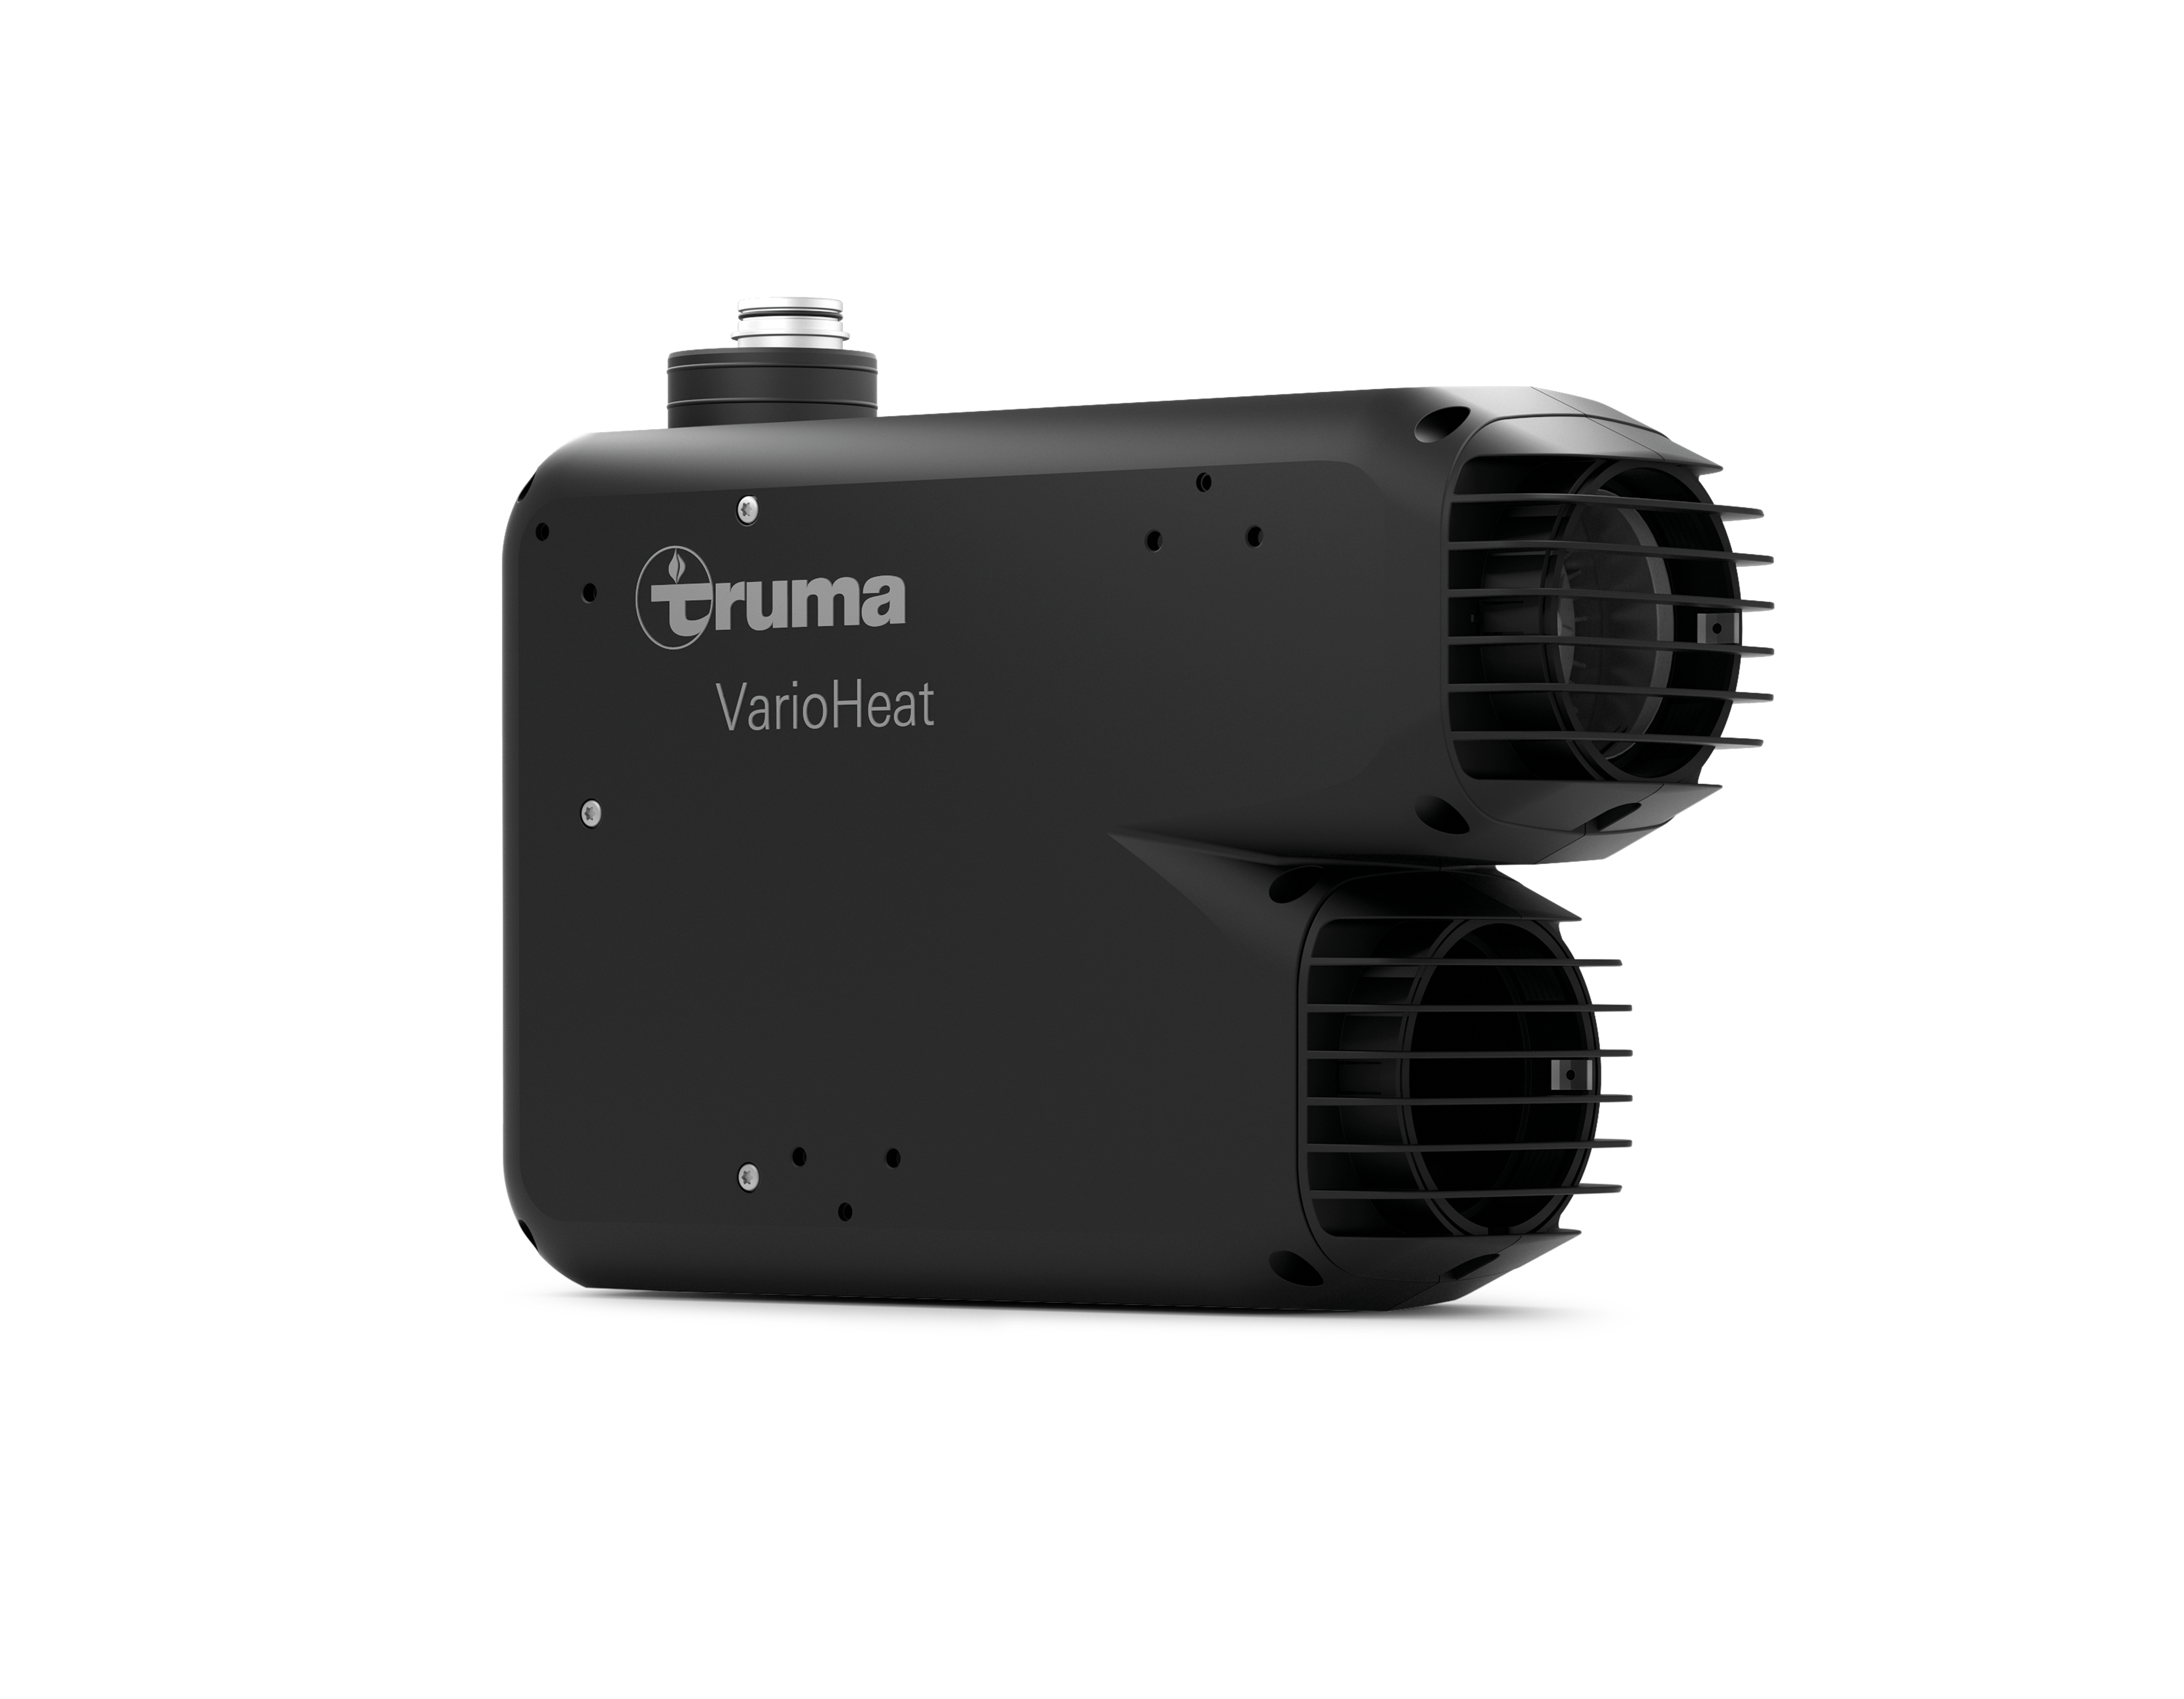 Truma VarioHeat heaters